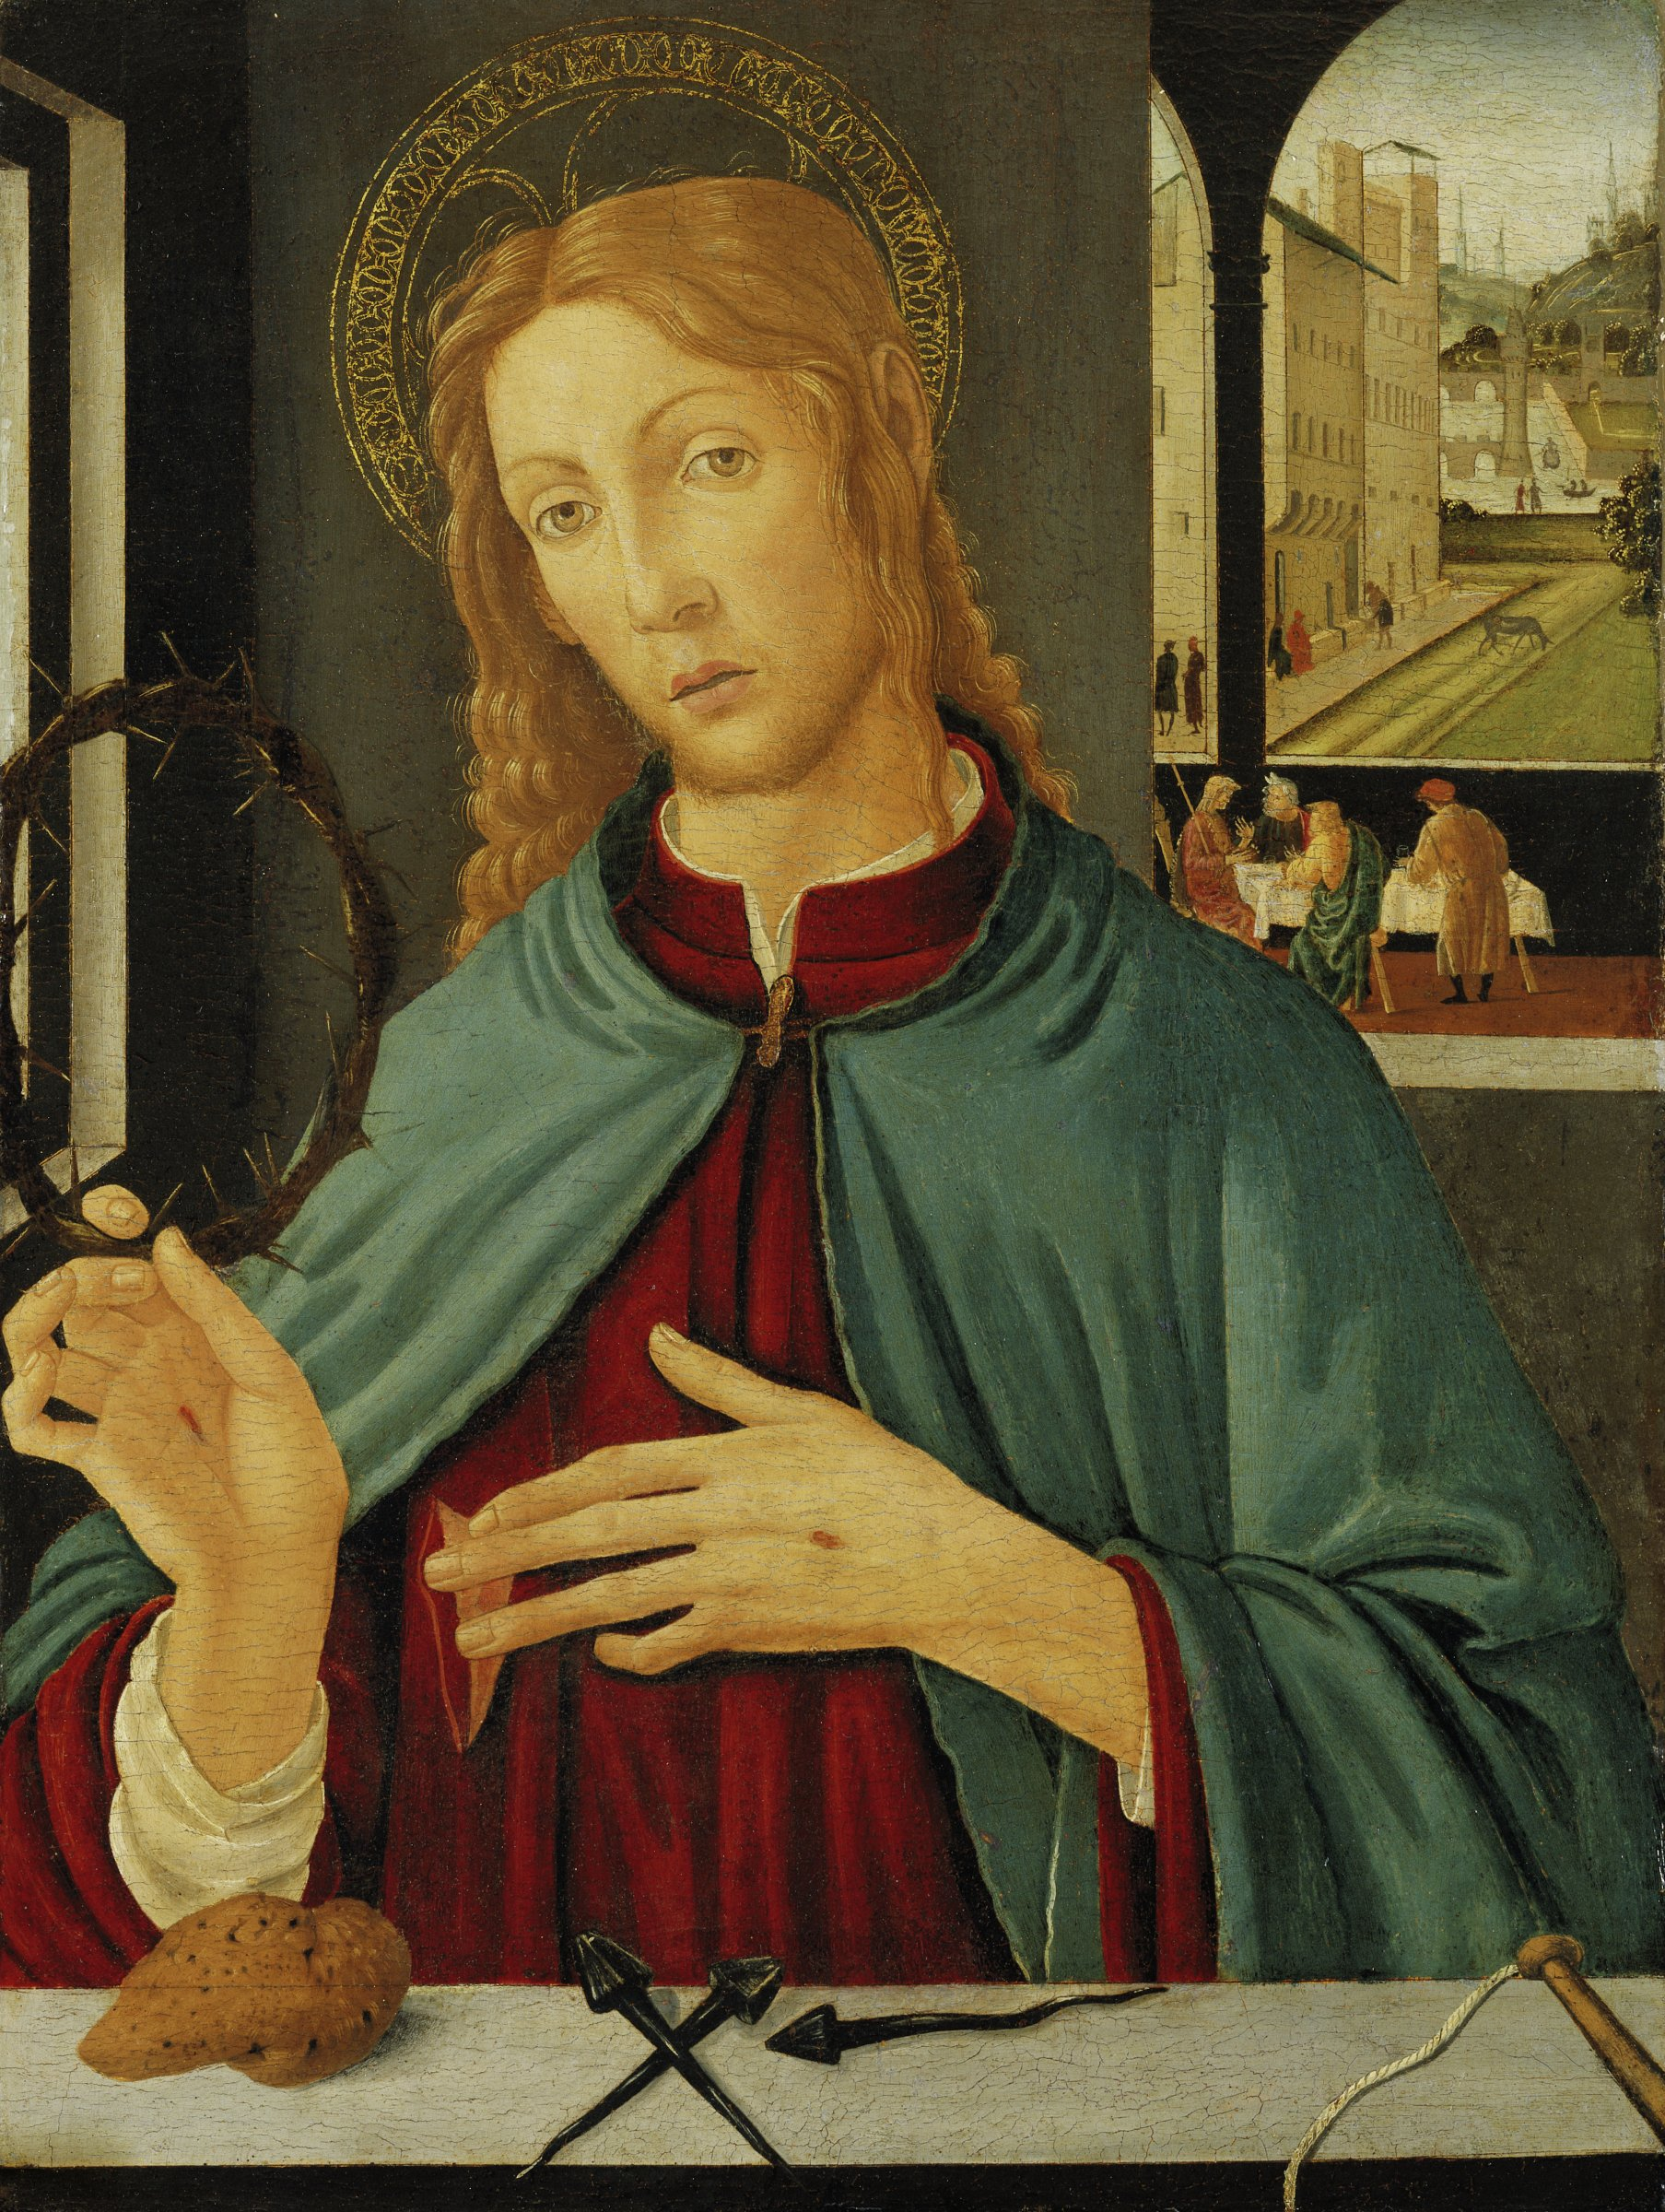 In a room with a view of an Italian medieval landscape, the risen Christ appears with the instruments of his Passion: a crown of thorns, three nails, a scourge, and a sponge soaked in vinegar.